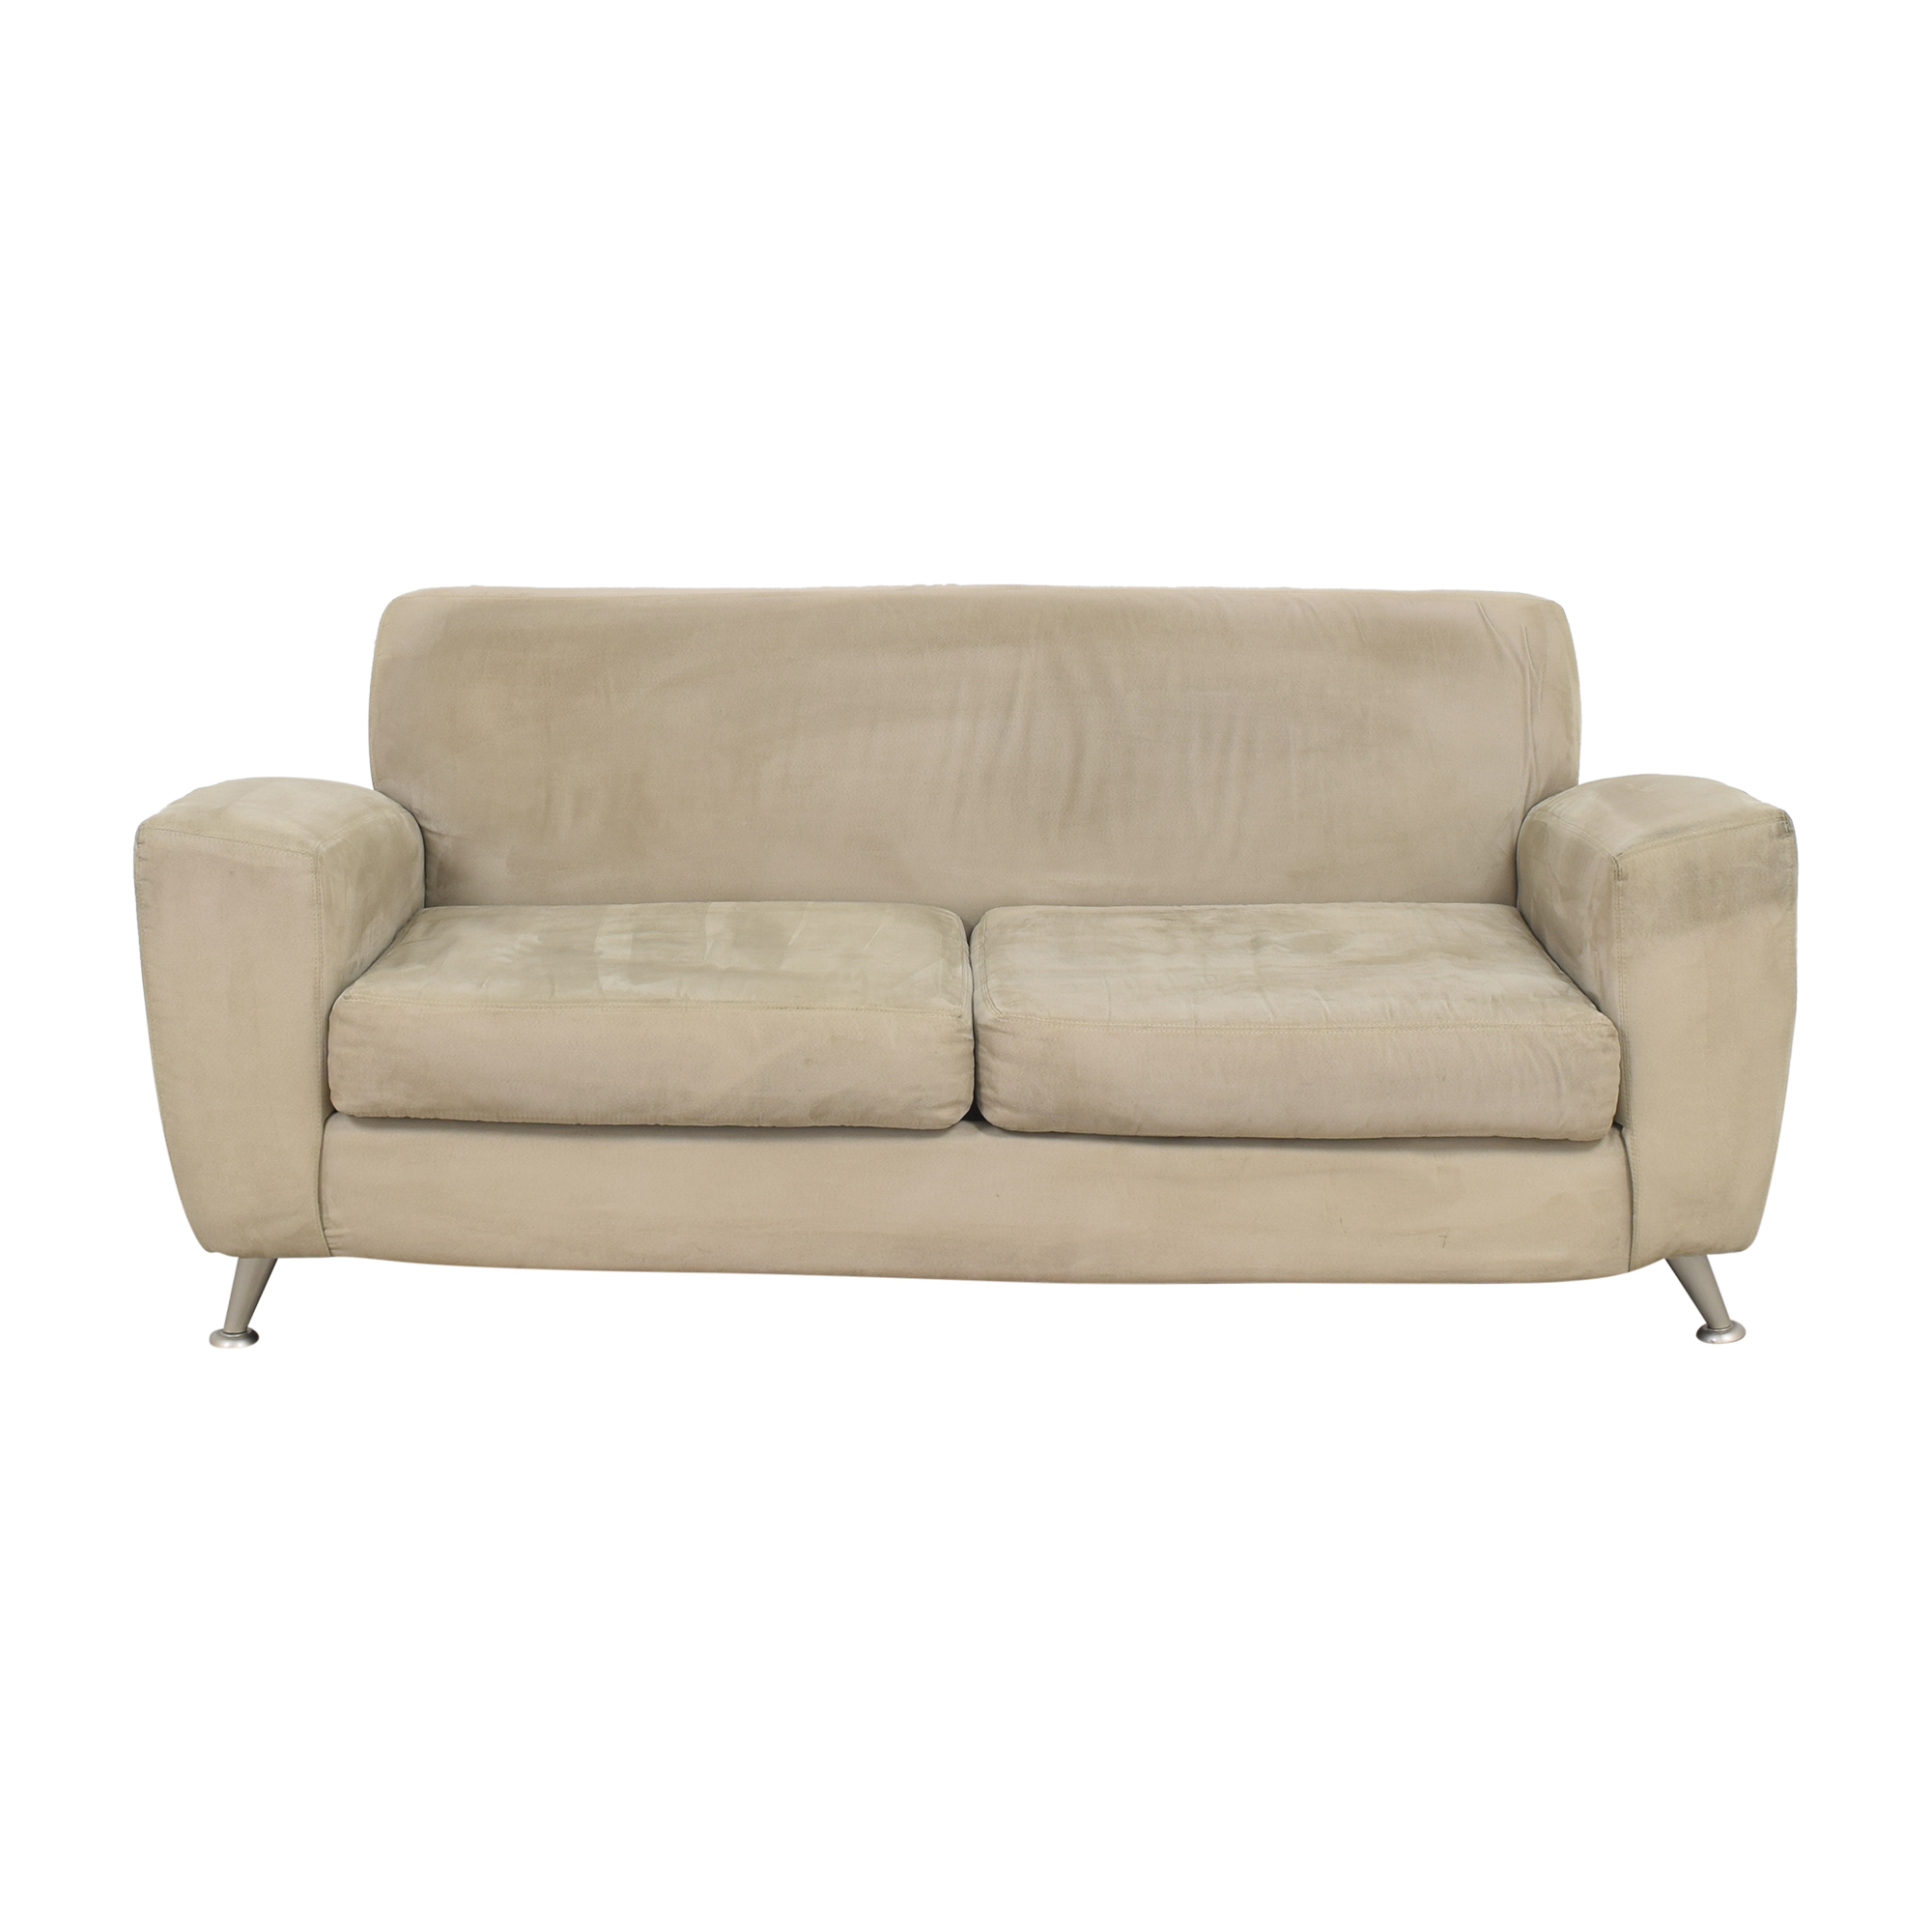 Jensen-Lewis Jensen-Lewis Two Cushion Sofa price